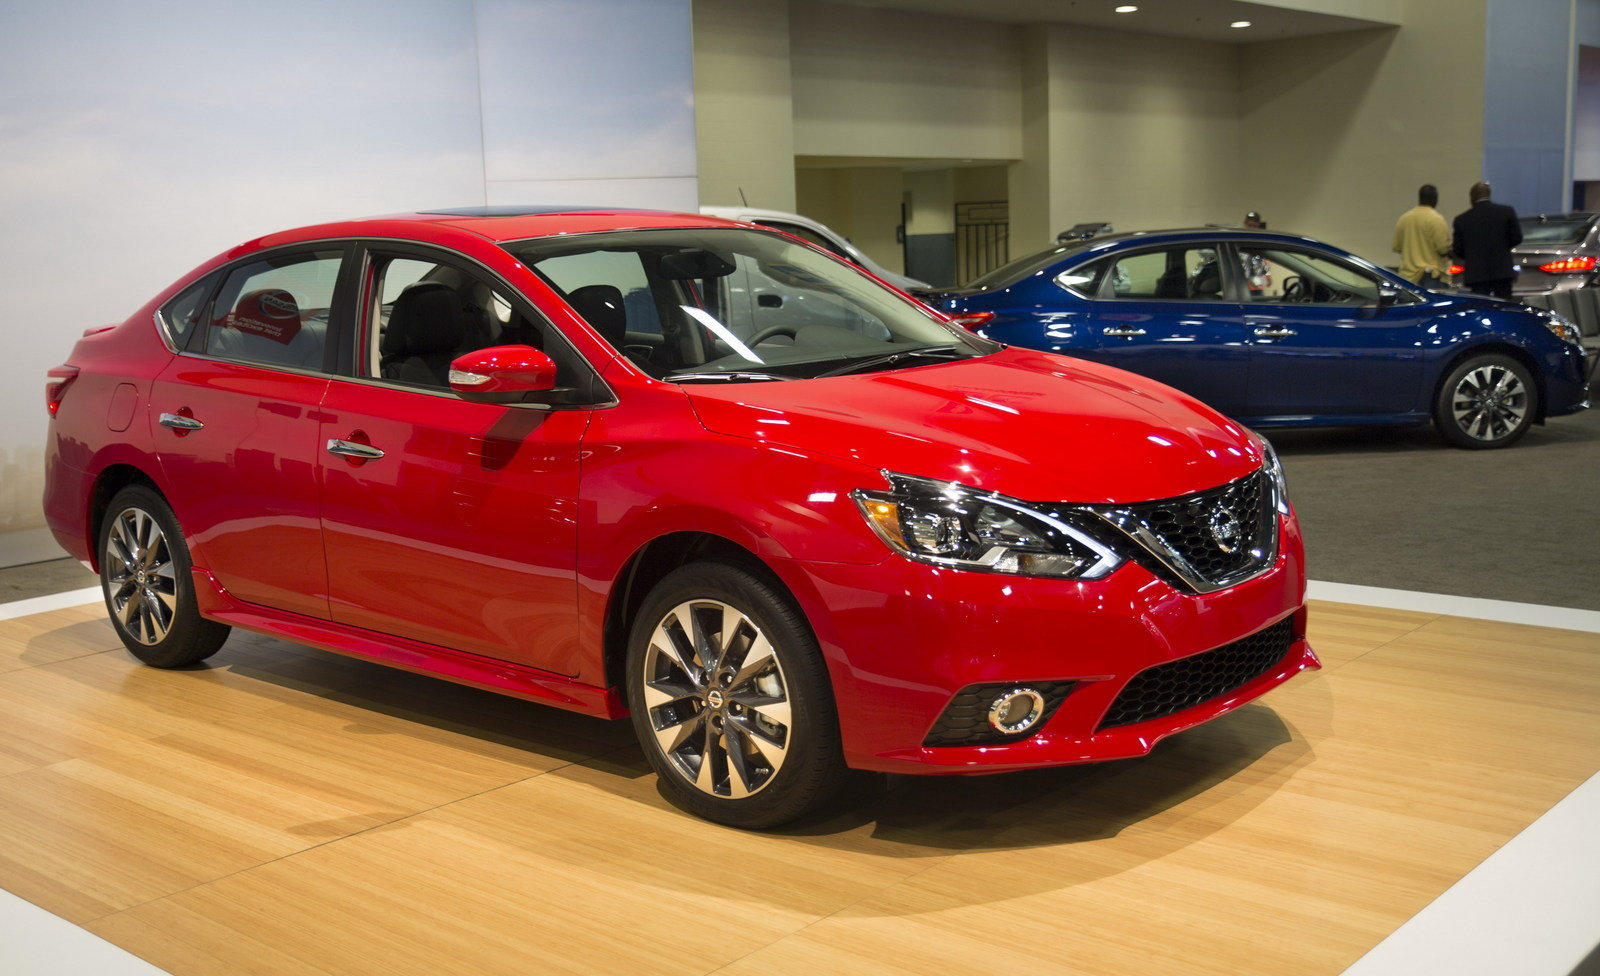 2017 nissan sentra sr turbo picture 687914 car review top speed. Black Bedroom Furniture Sets. Home Design Ideas